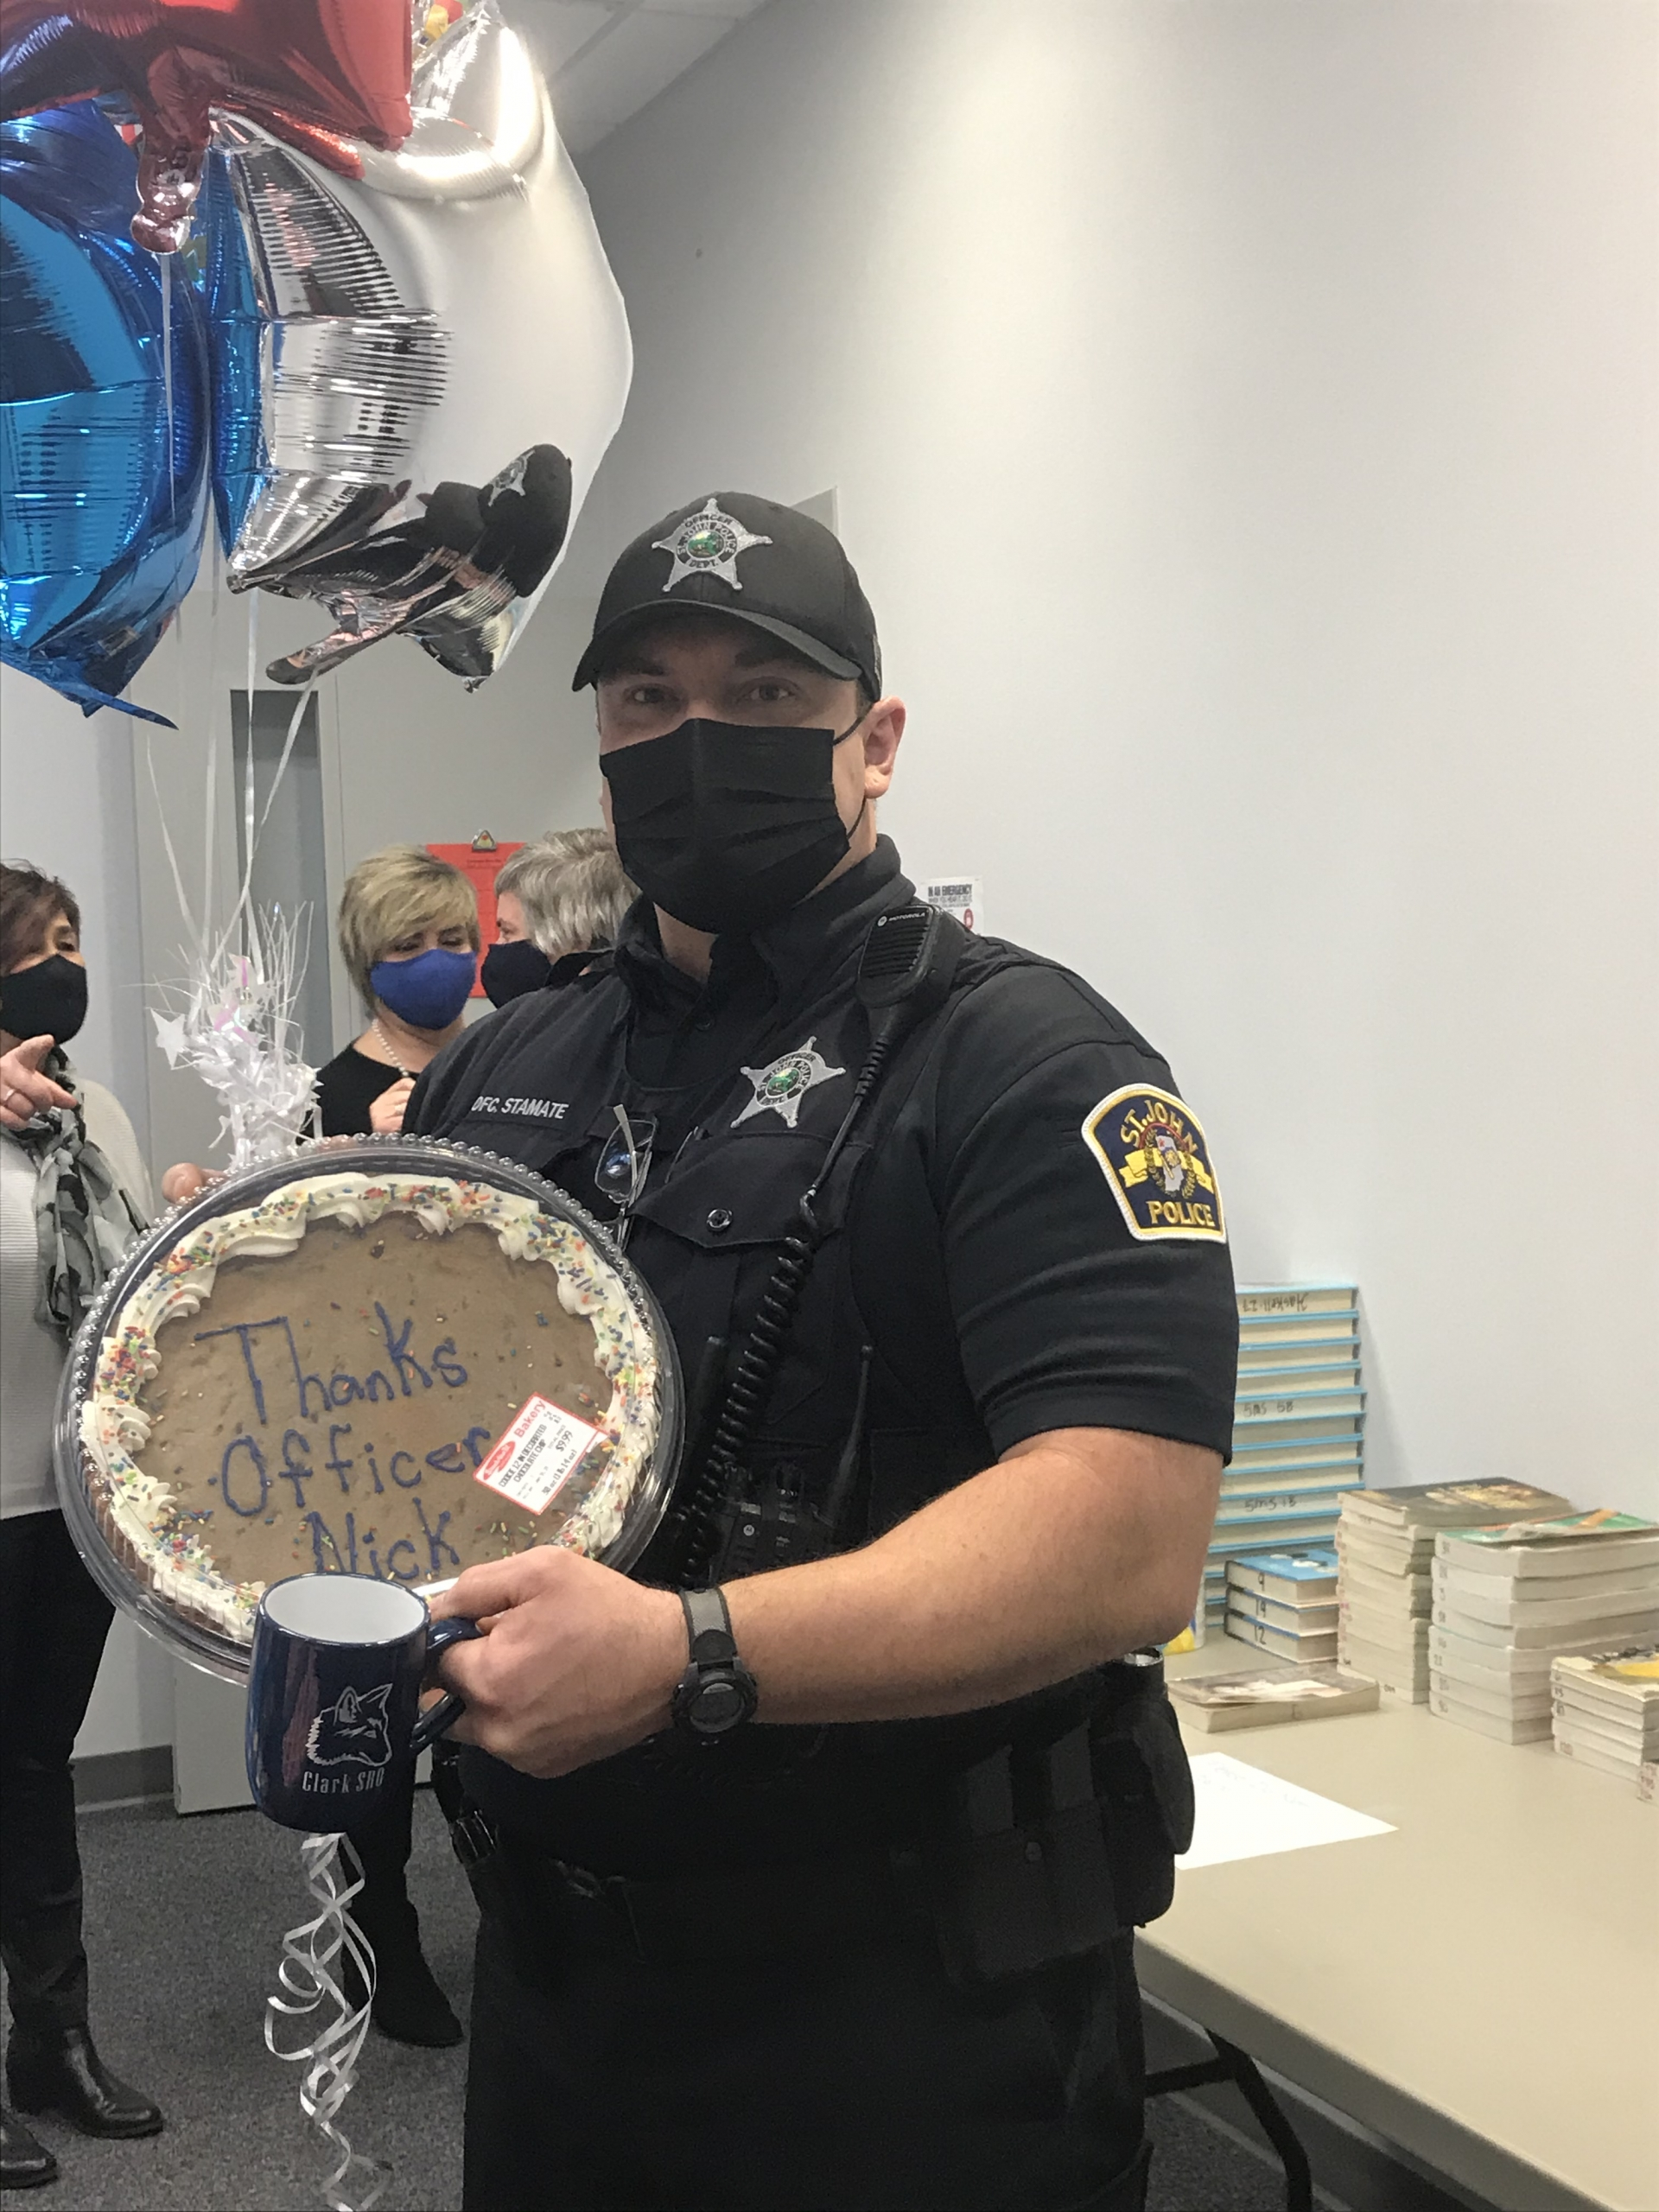 Clark Middle School celebrates Officer Nick for Law Enforcement Appreciation Day.